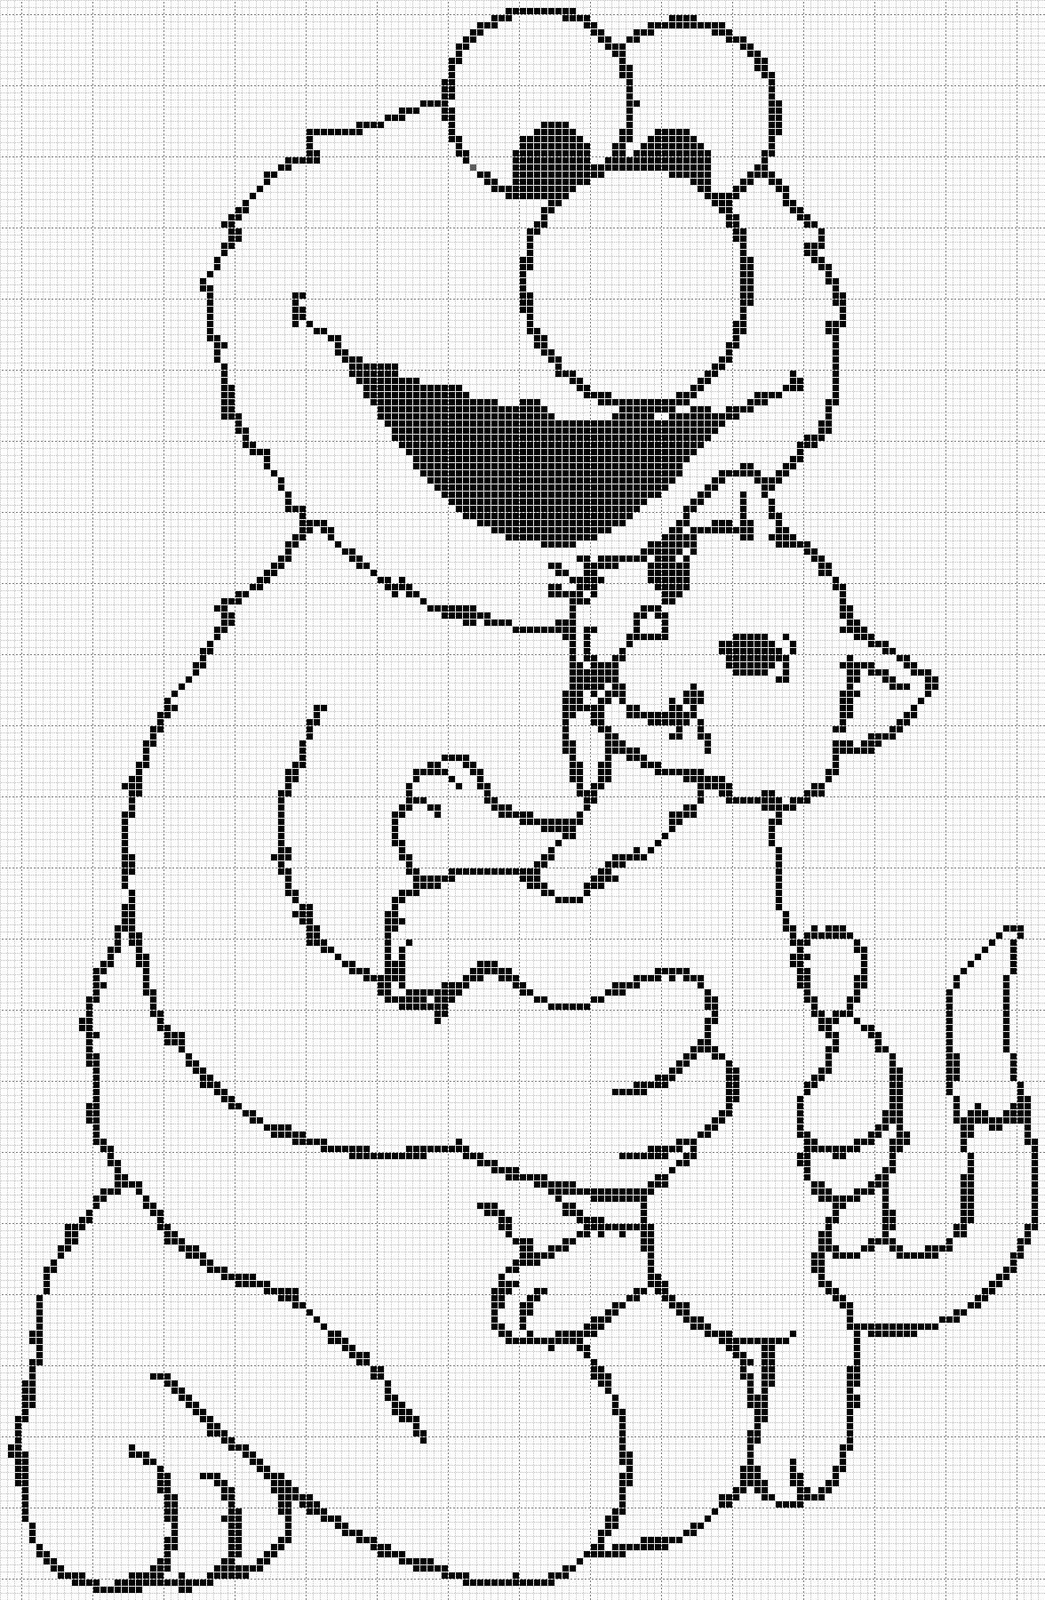 mowglie coloring pages to print - photo#31